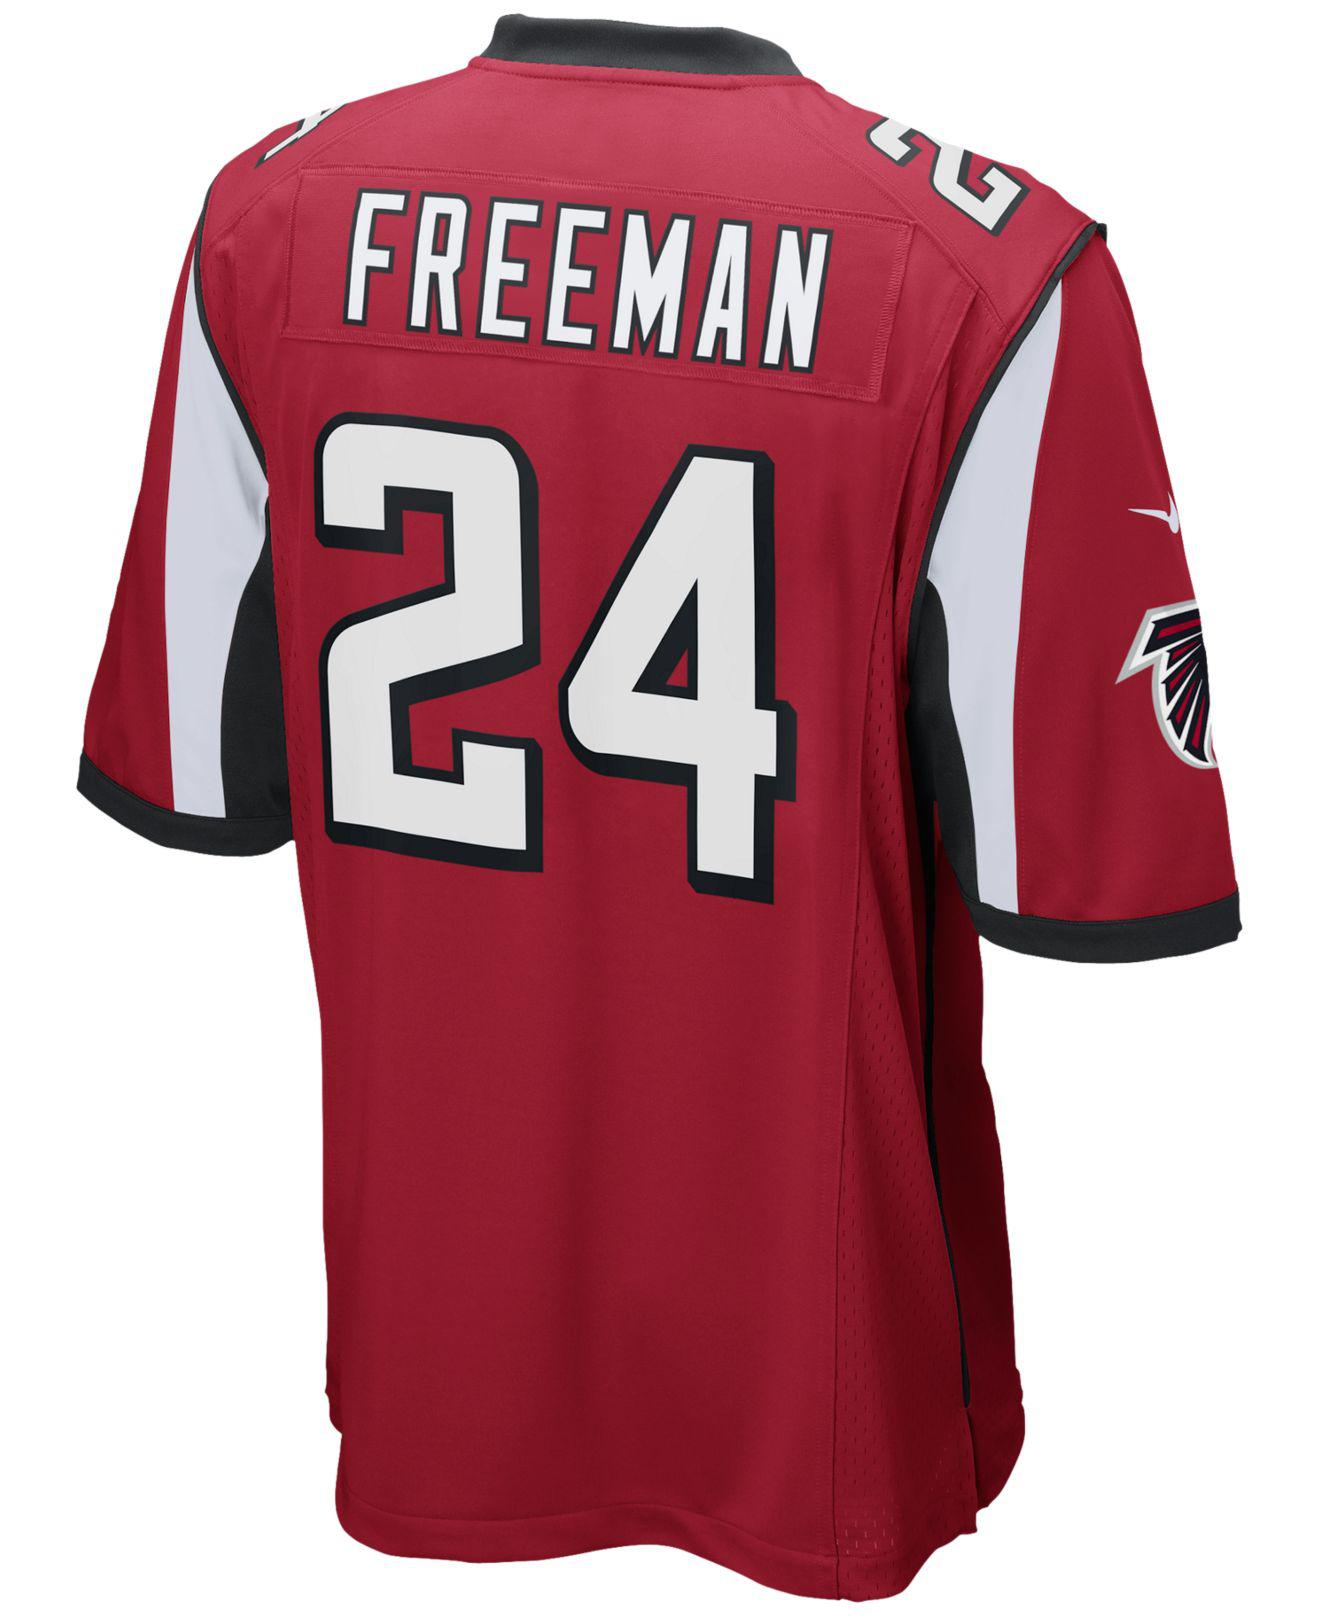 90ff68443 Nike - Red Men s Devonta Freeman Atlanta Falcons Game Jersey for Men -  Lyst. View fullscreen